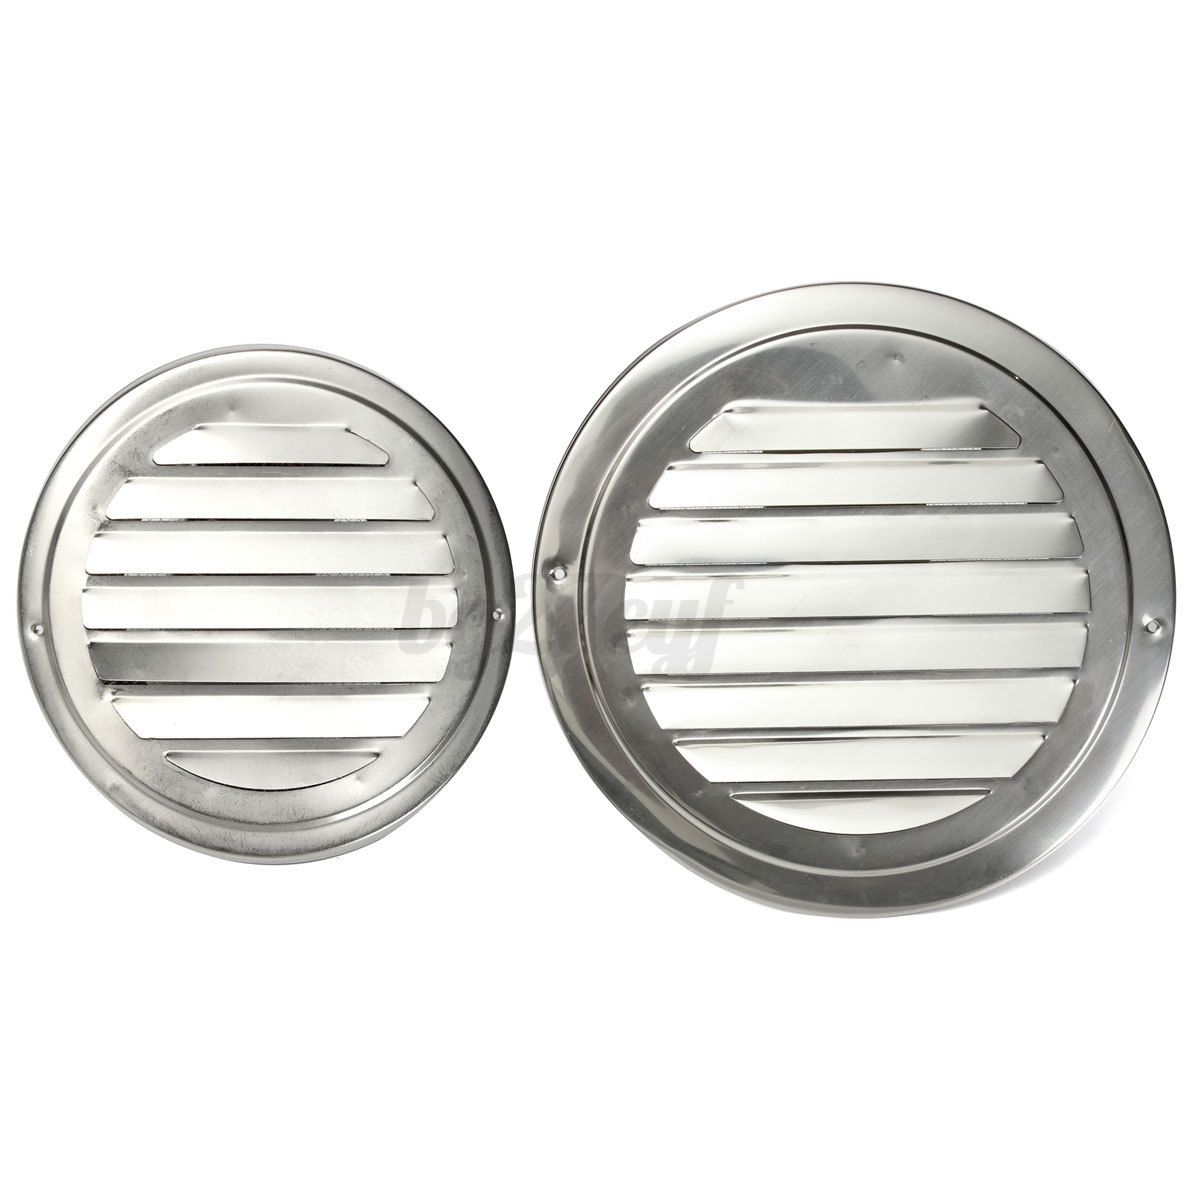 Stainless Steel Air Grille : Stainless steel silver circular air vent grille cover wall